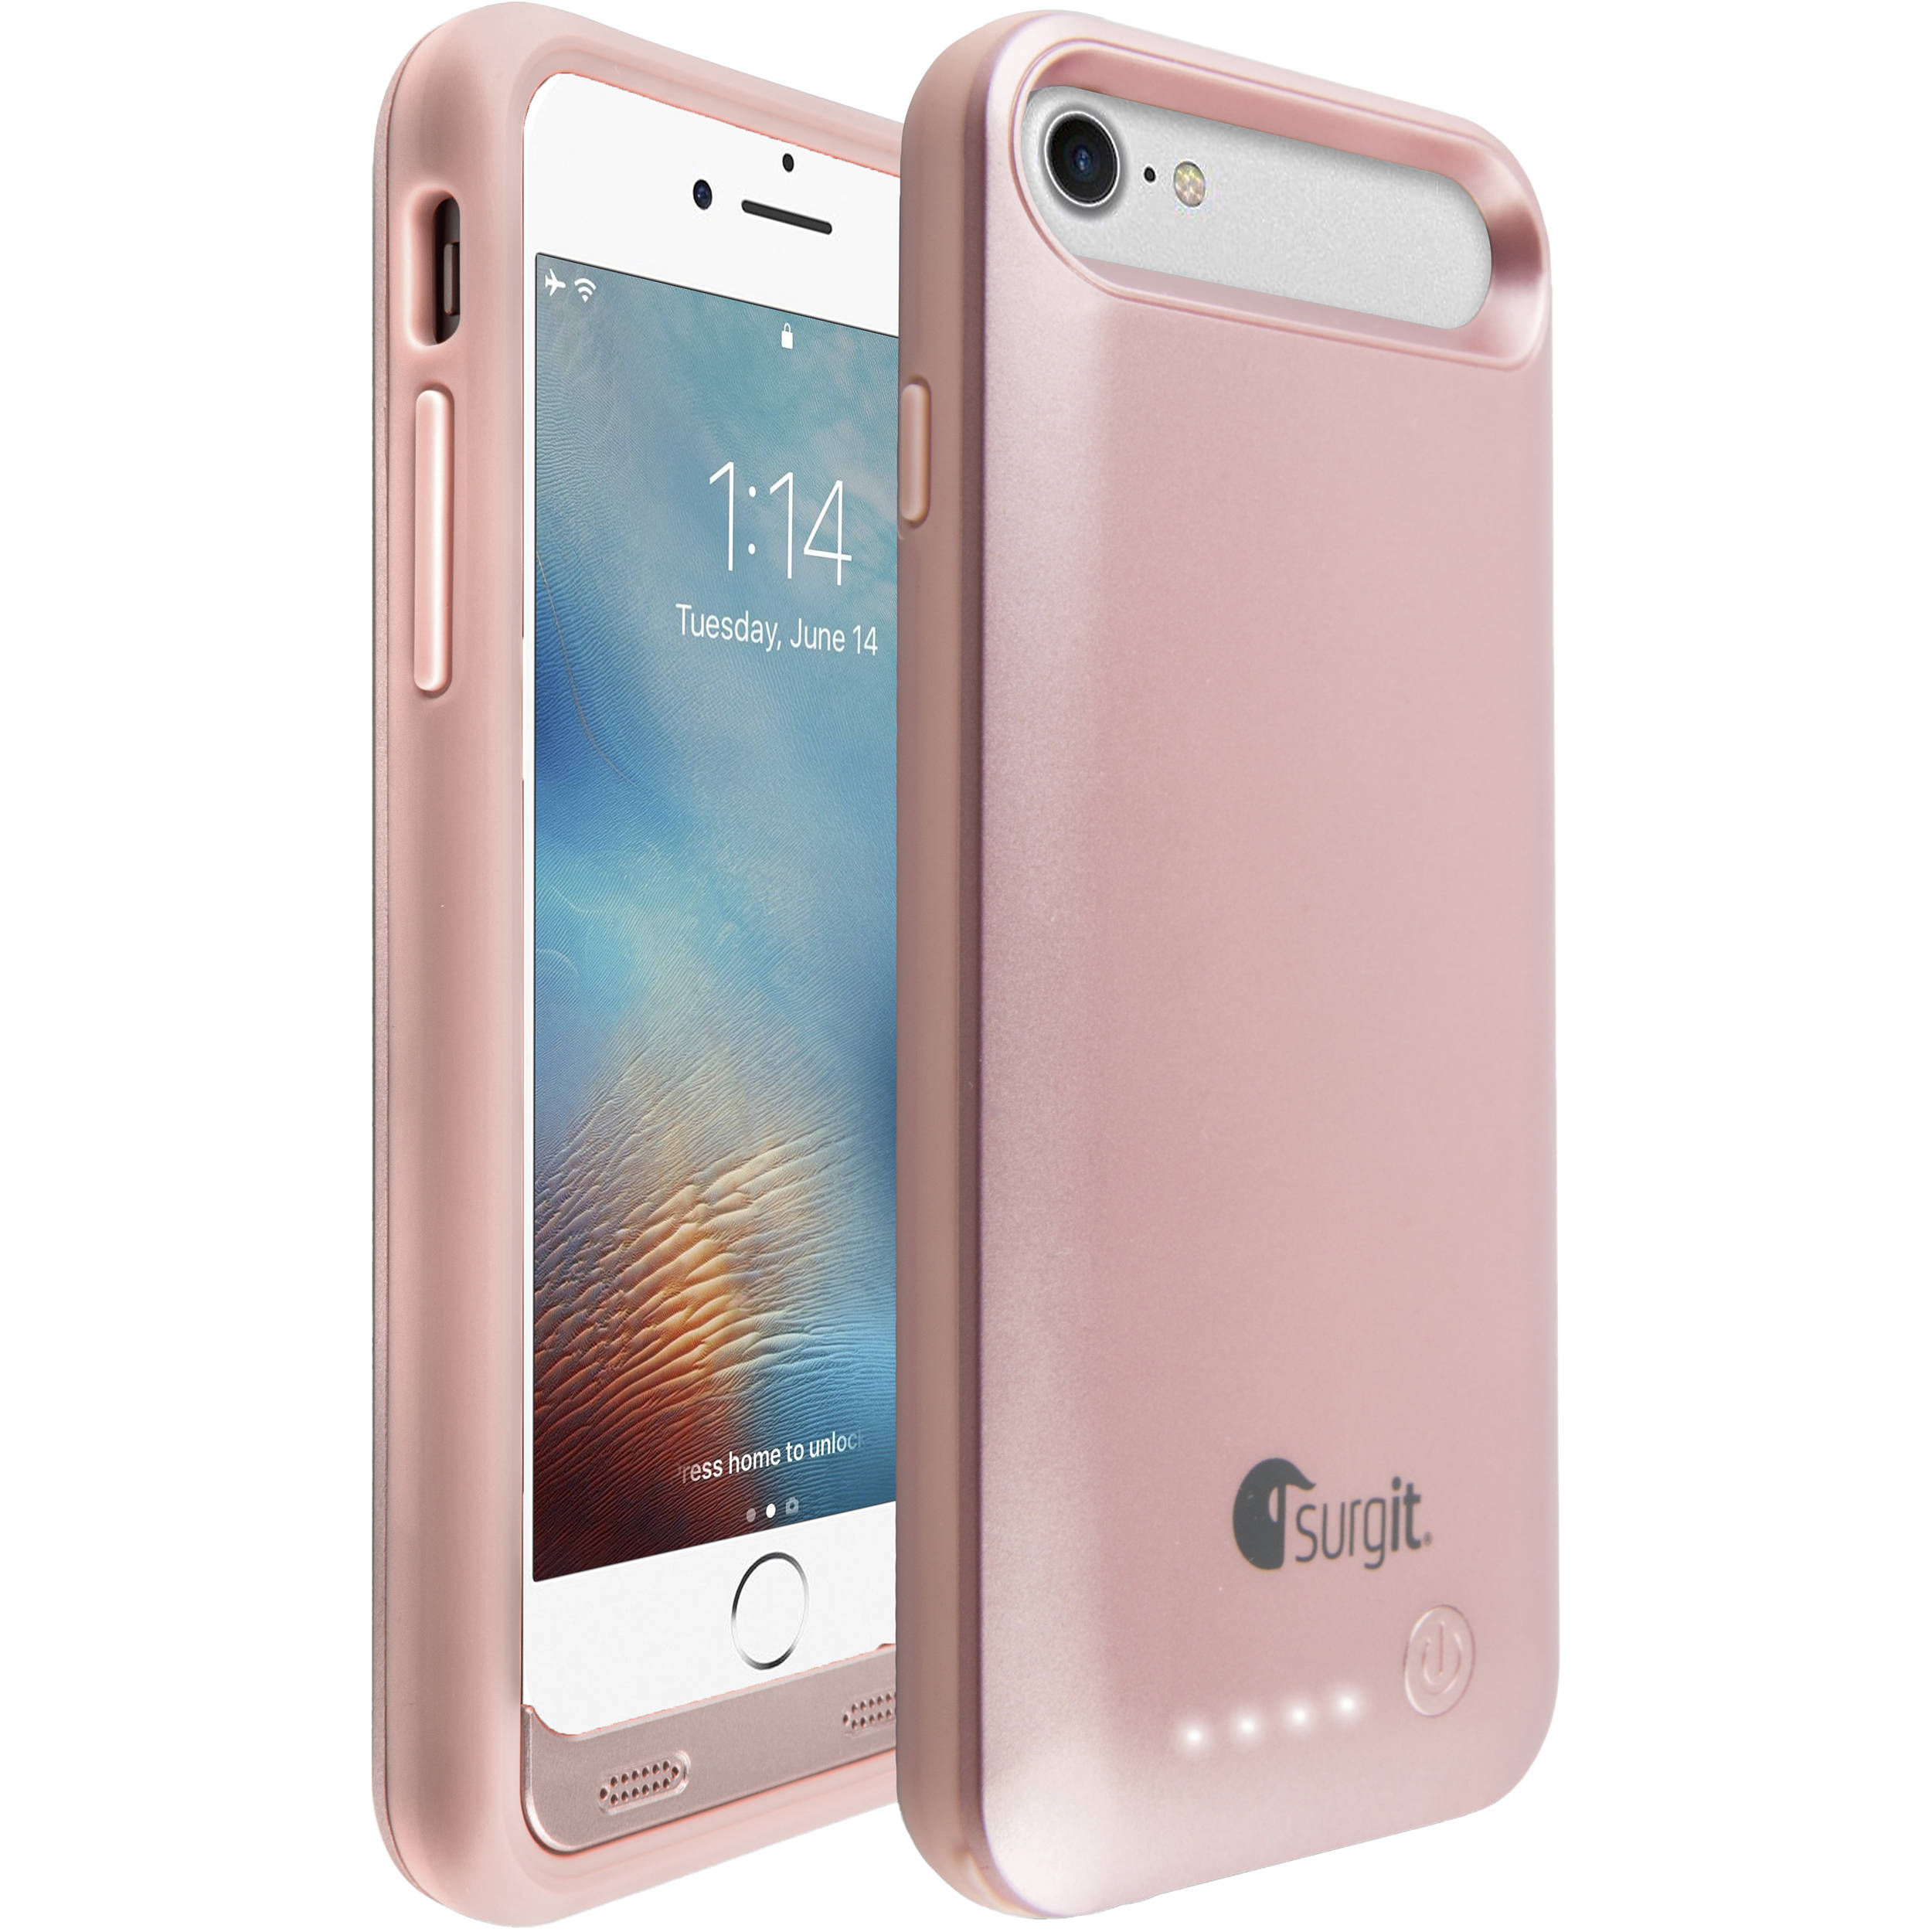 surgit battery case for iphone 7 plus 8 plus smapc ip7p r b h